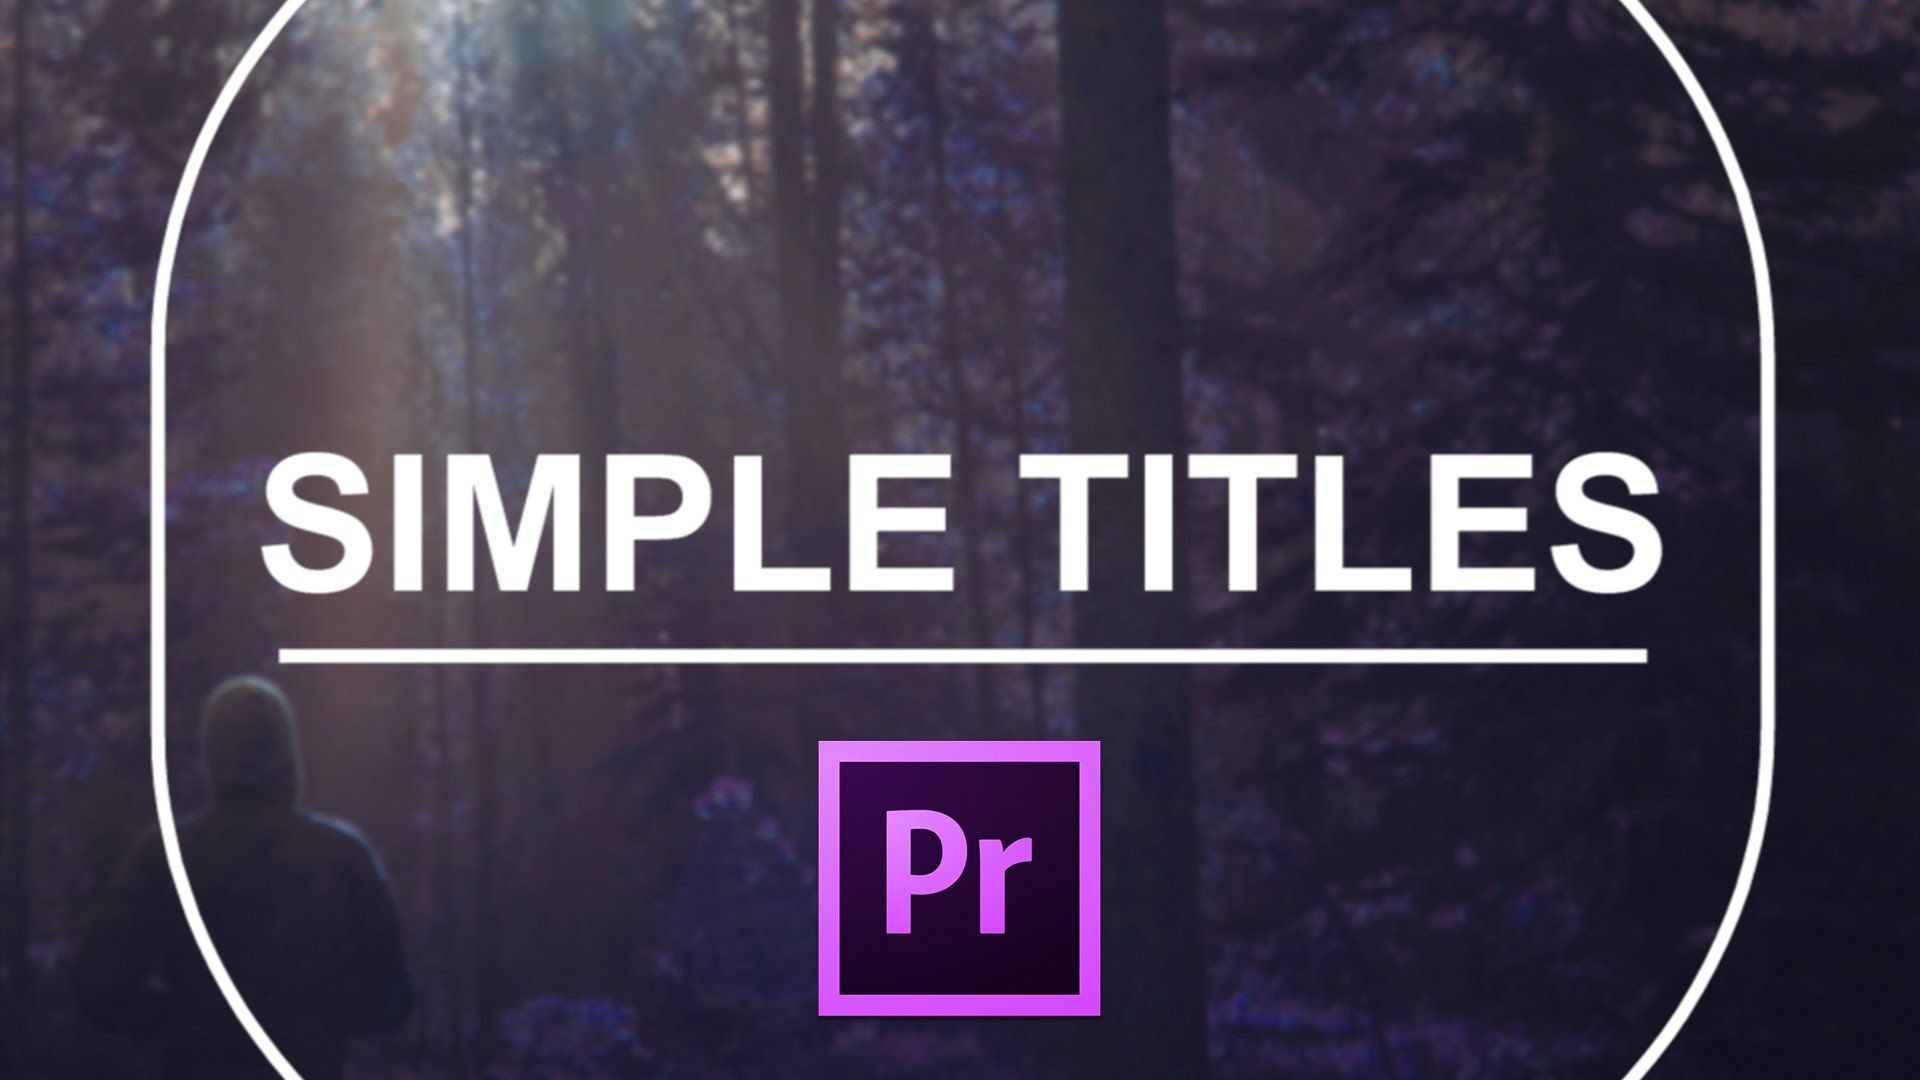 free premiere pro title templates - simple titles is a bundle of 10 title templates for